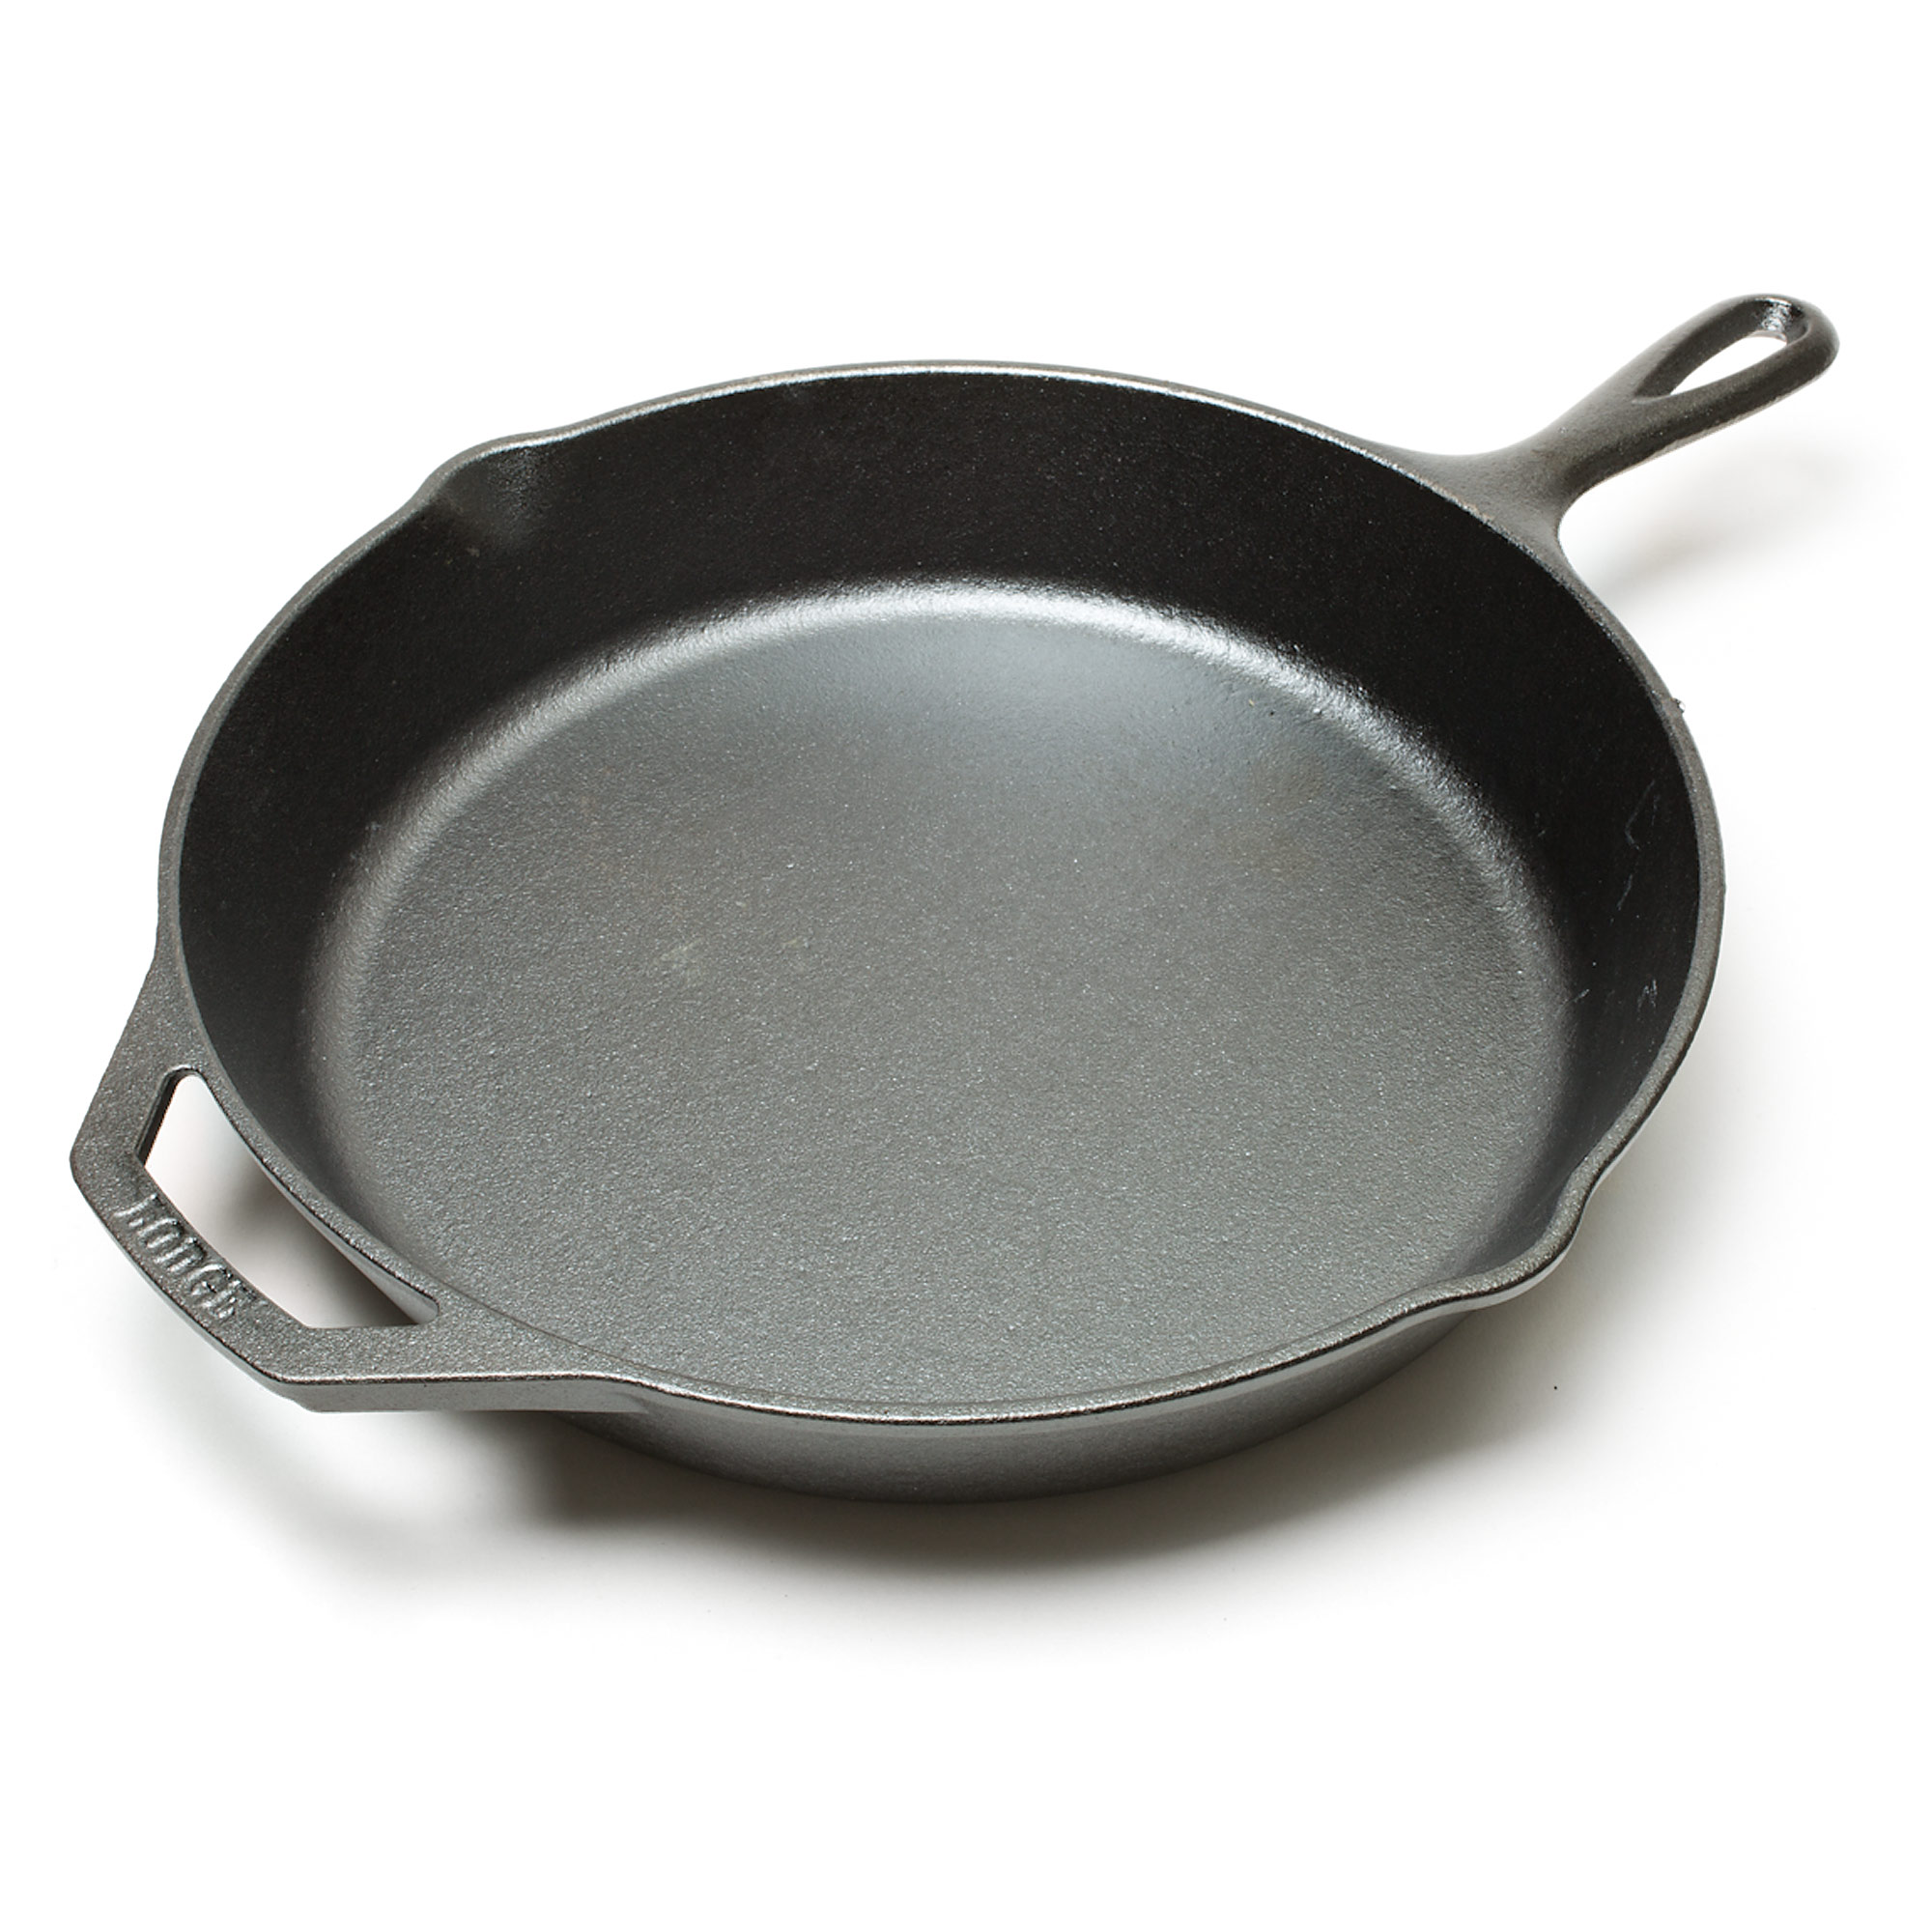 The Best Way to Season Cast Iron | Cook\'s Illustrated